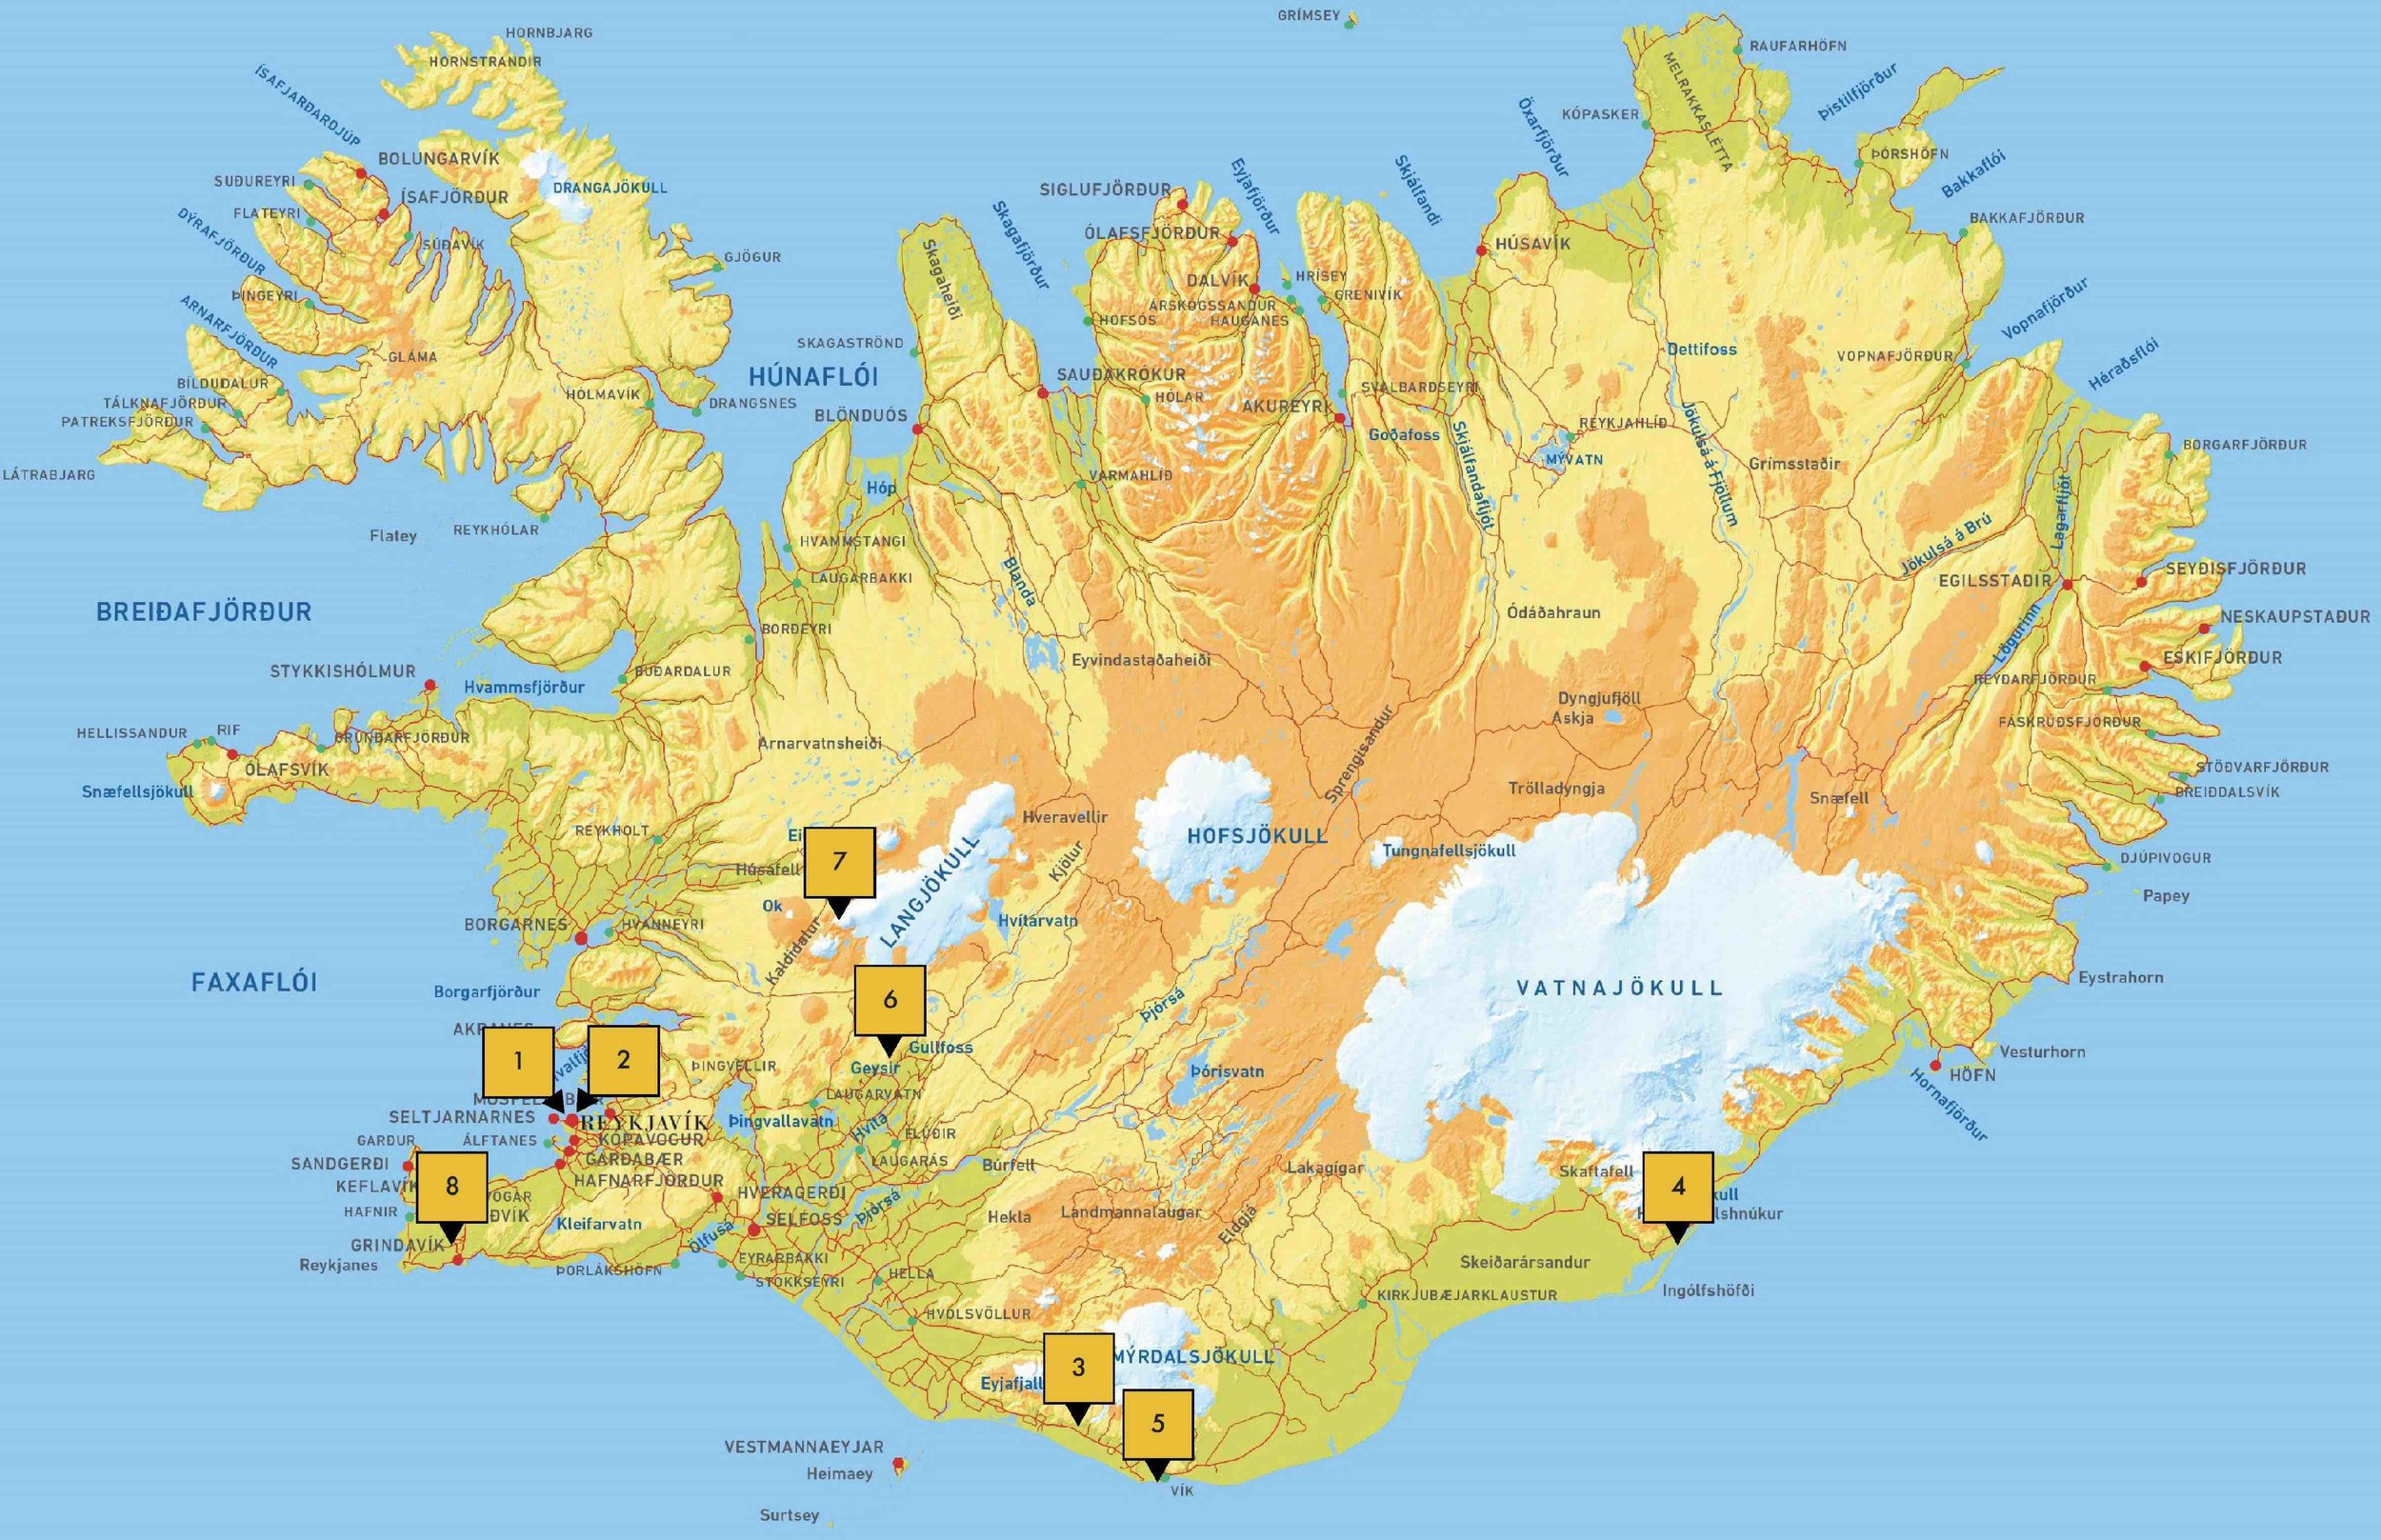 THE BIG TRIP: ICELAND MAP